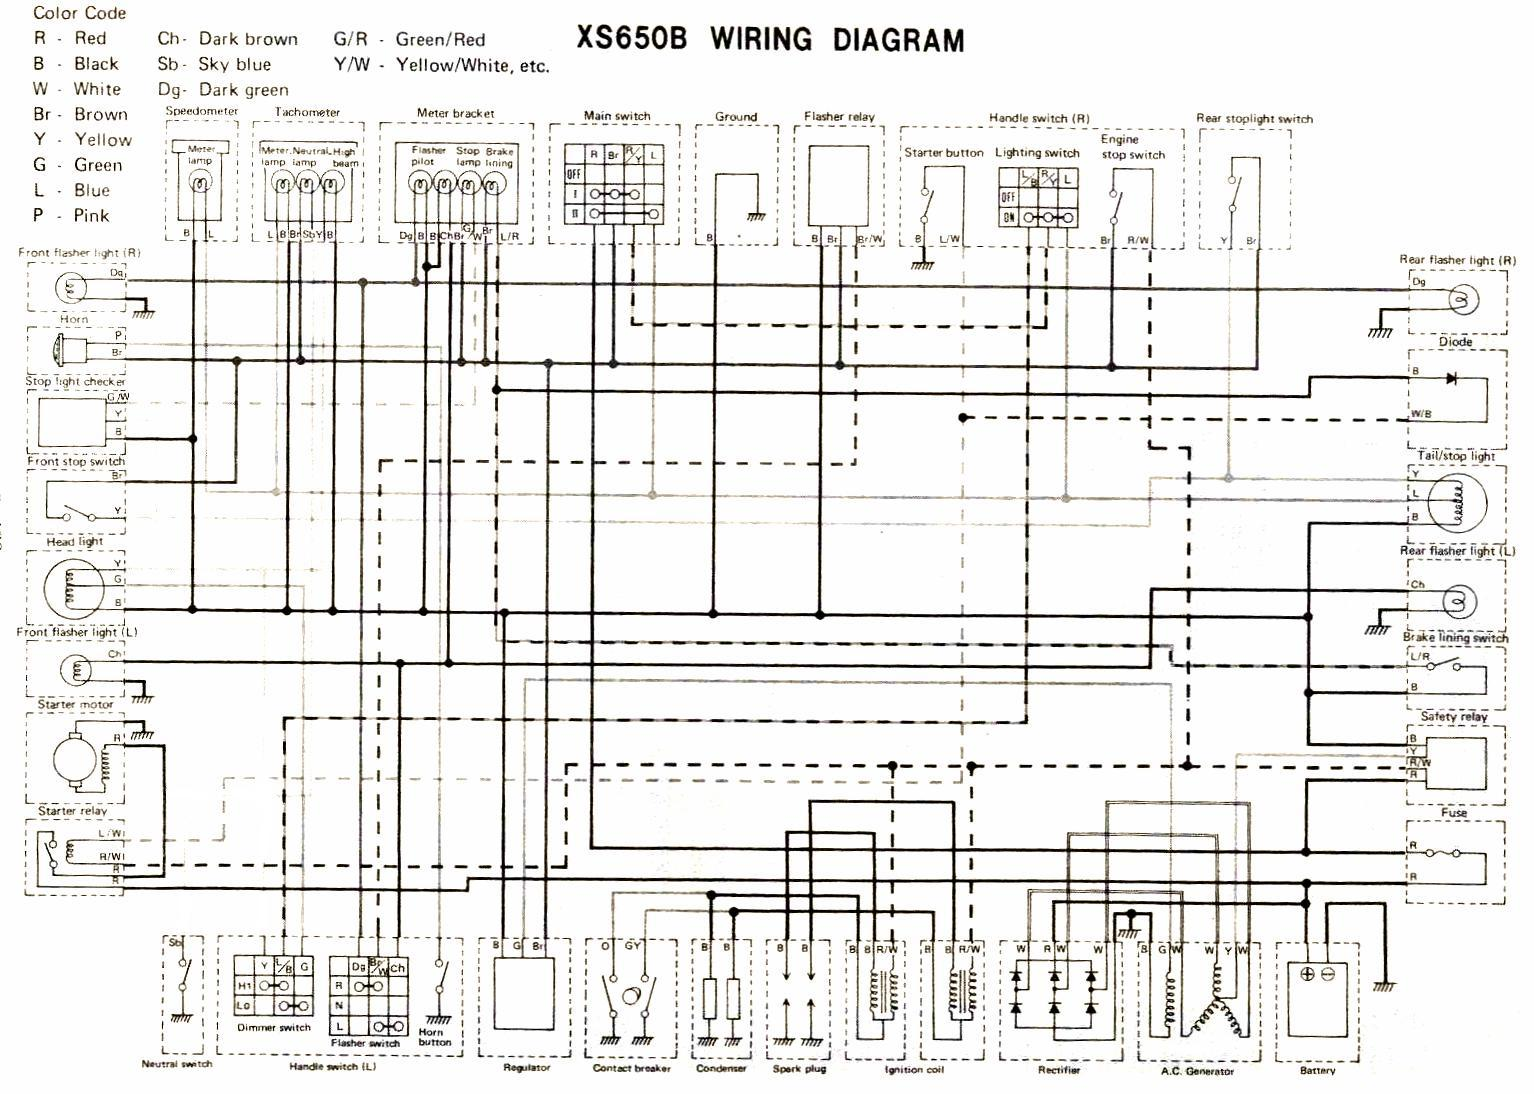 82 Xv920 Wiring Diagram Library 1977 Bronco Diagrams Yamaha Motorcycle 1975 Xs650b